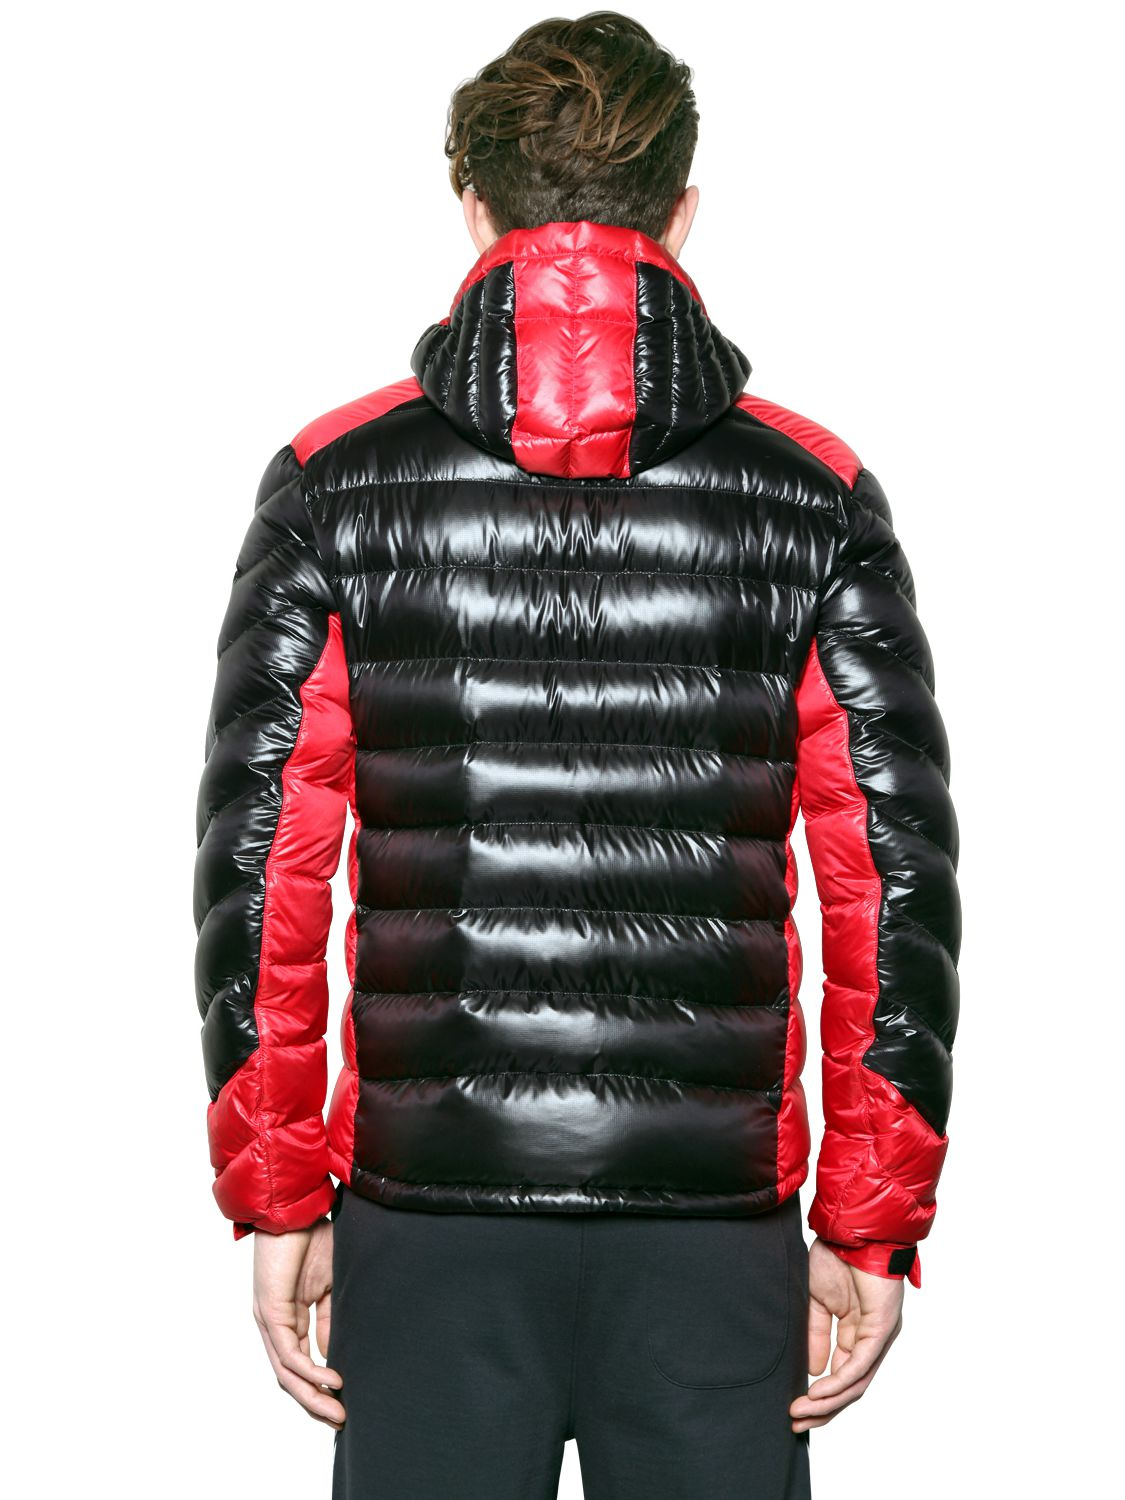 64ddd558d Lyst - Emporio Armani Extreme Shiny Nylon Down Jacket in Red for Men